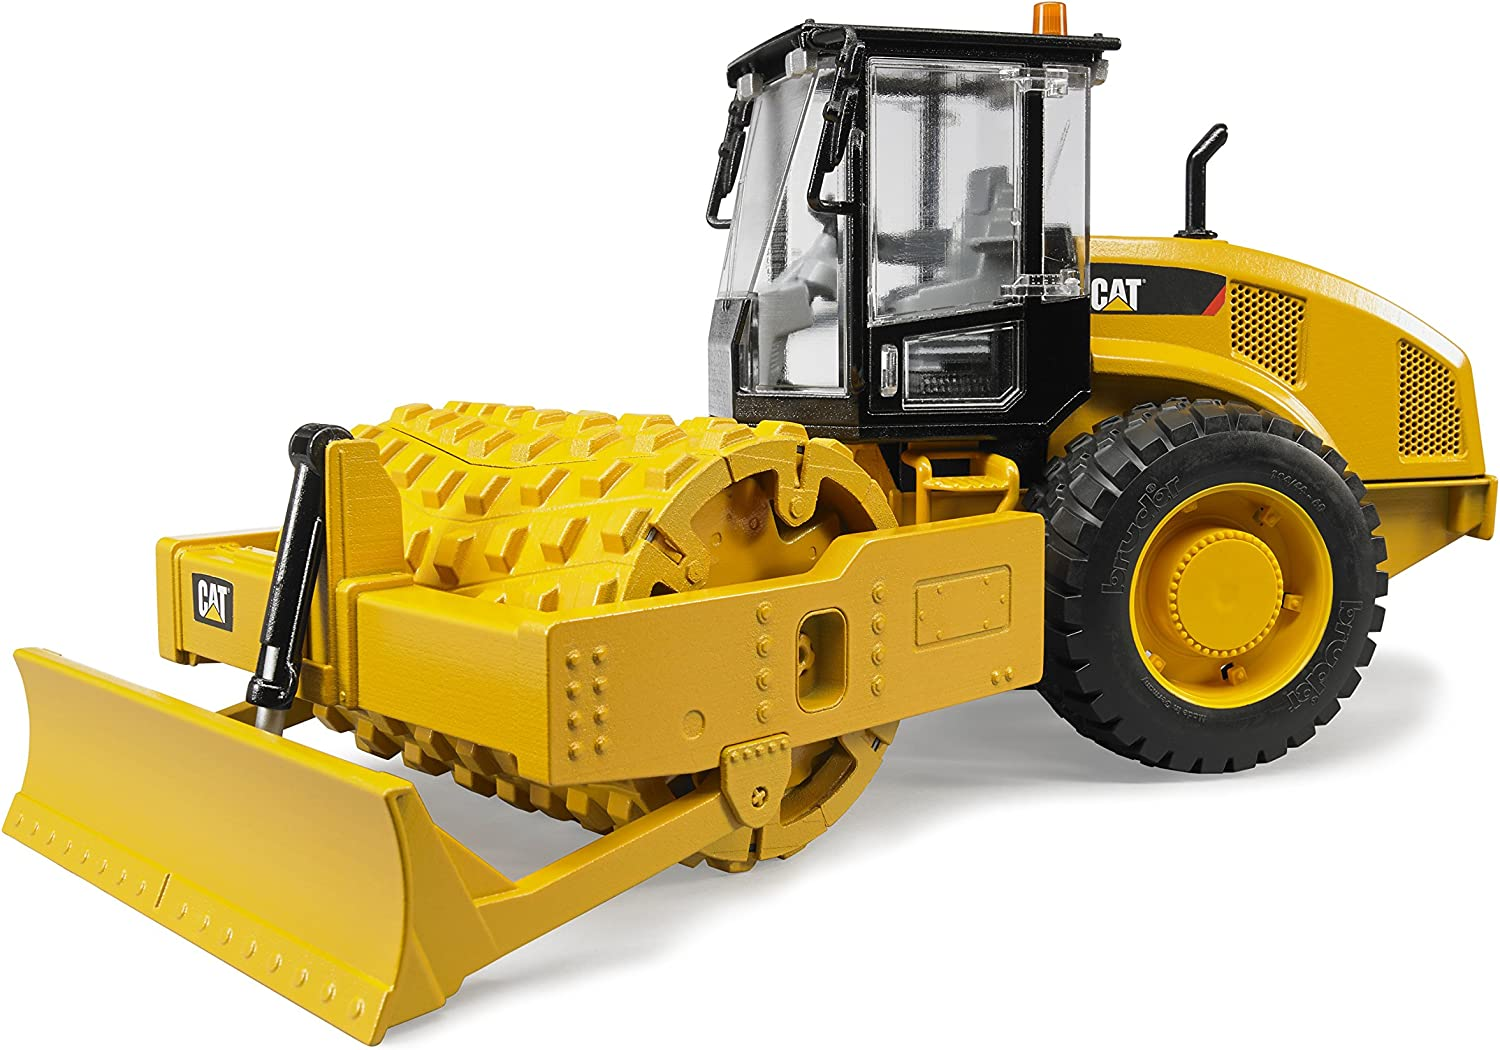 Bruder 02451 Caterpillar Soil Compactor with Leveling Blade